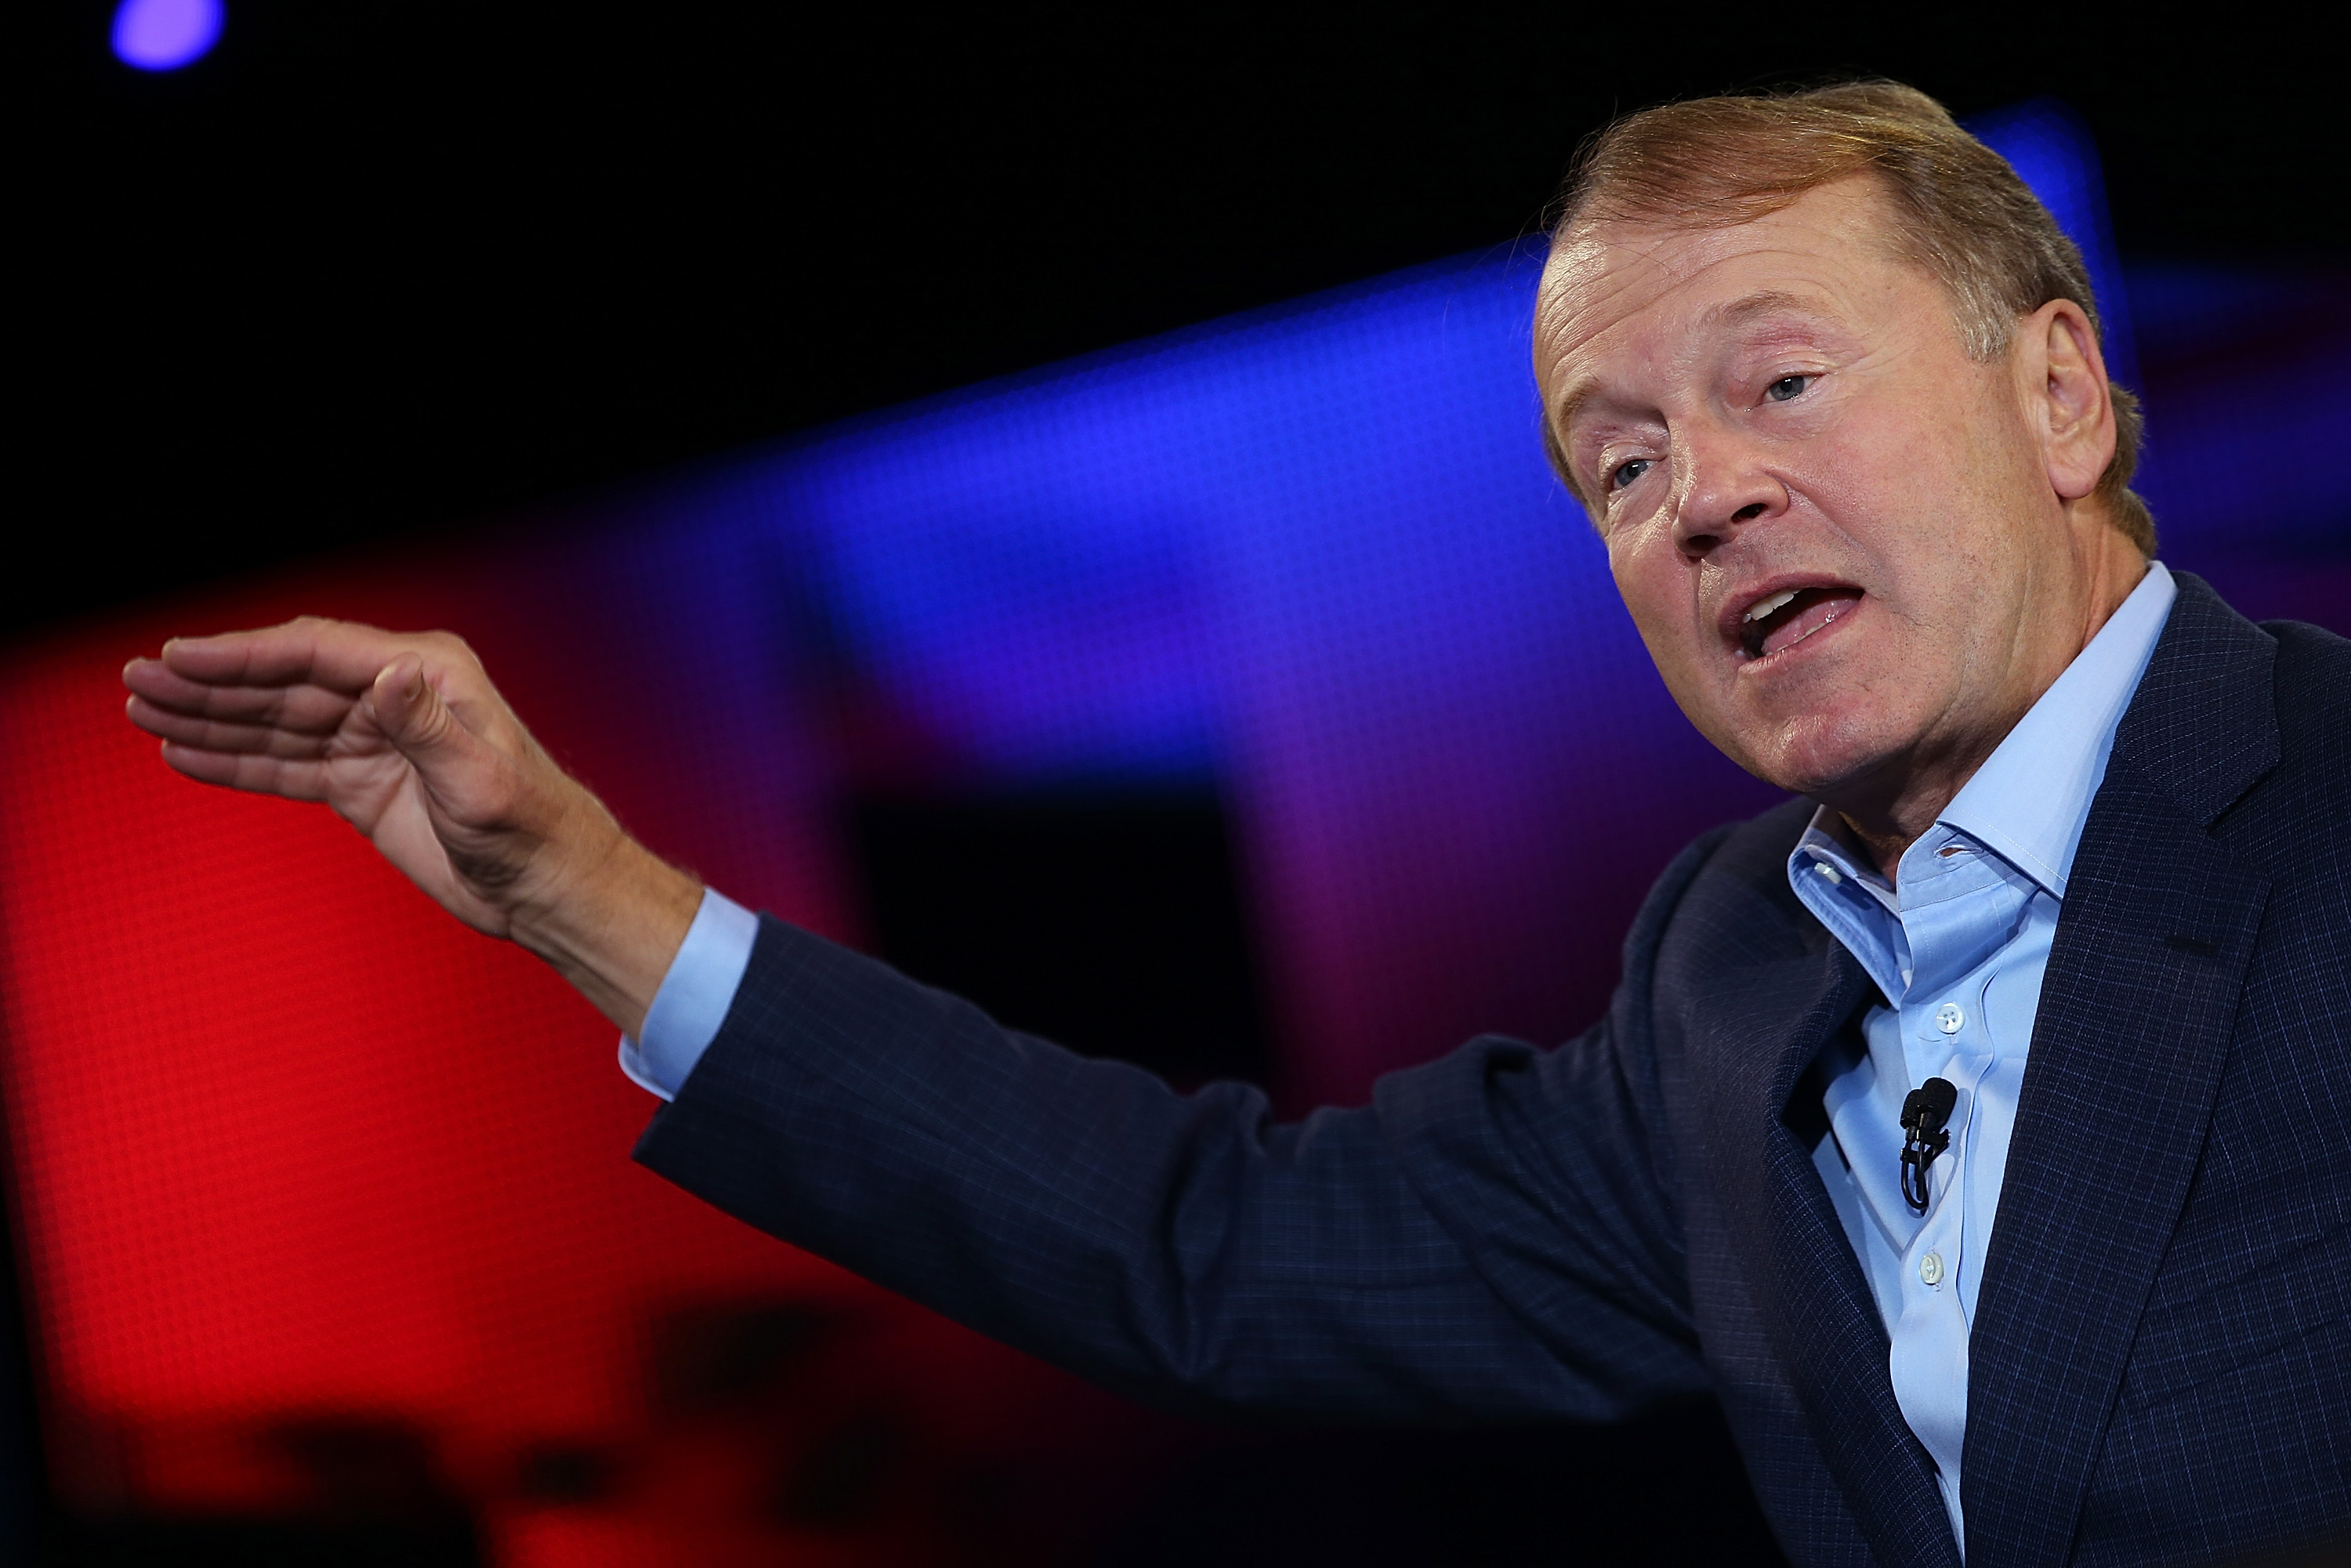 Cisco CEO John Chambers Gives Keynote Address At Cisco Live